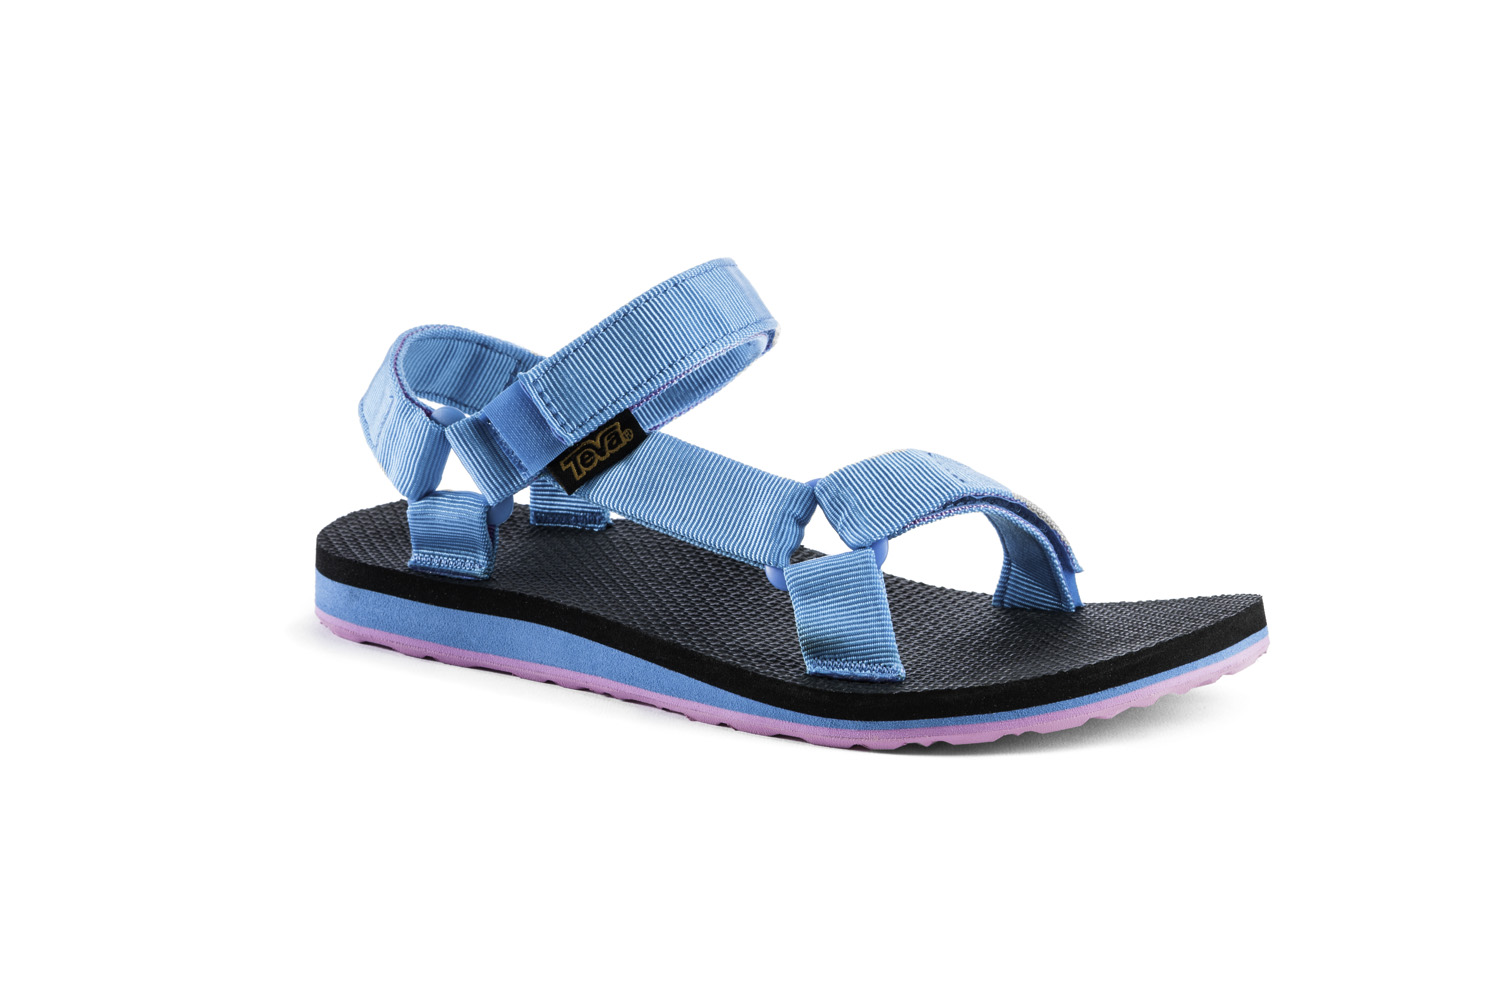 Teva Original Universal Sandals in Blue, £30 (available at John Lewis)